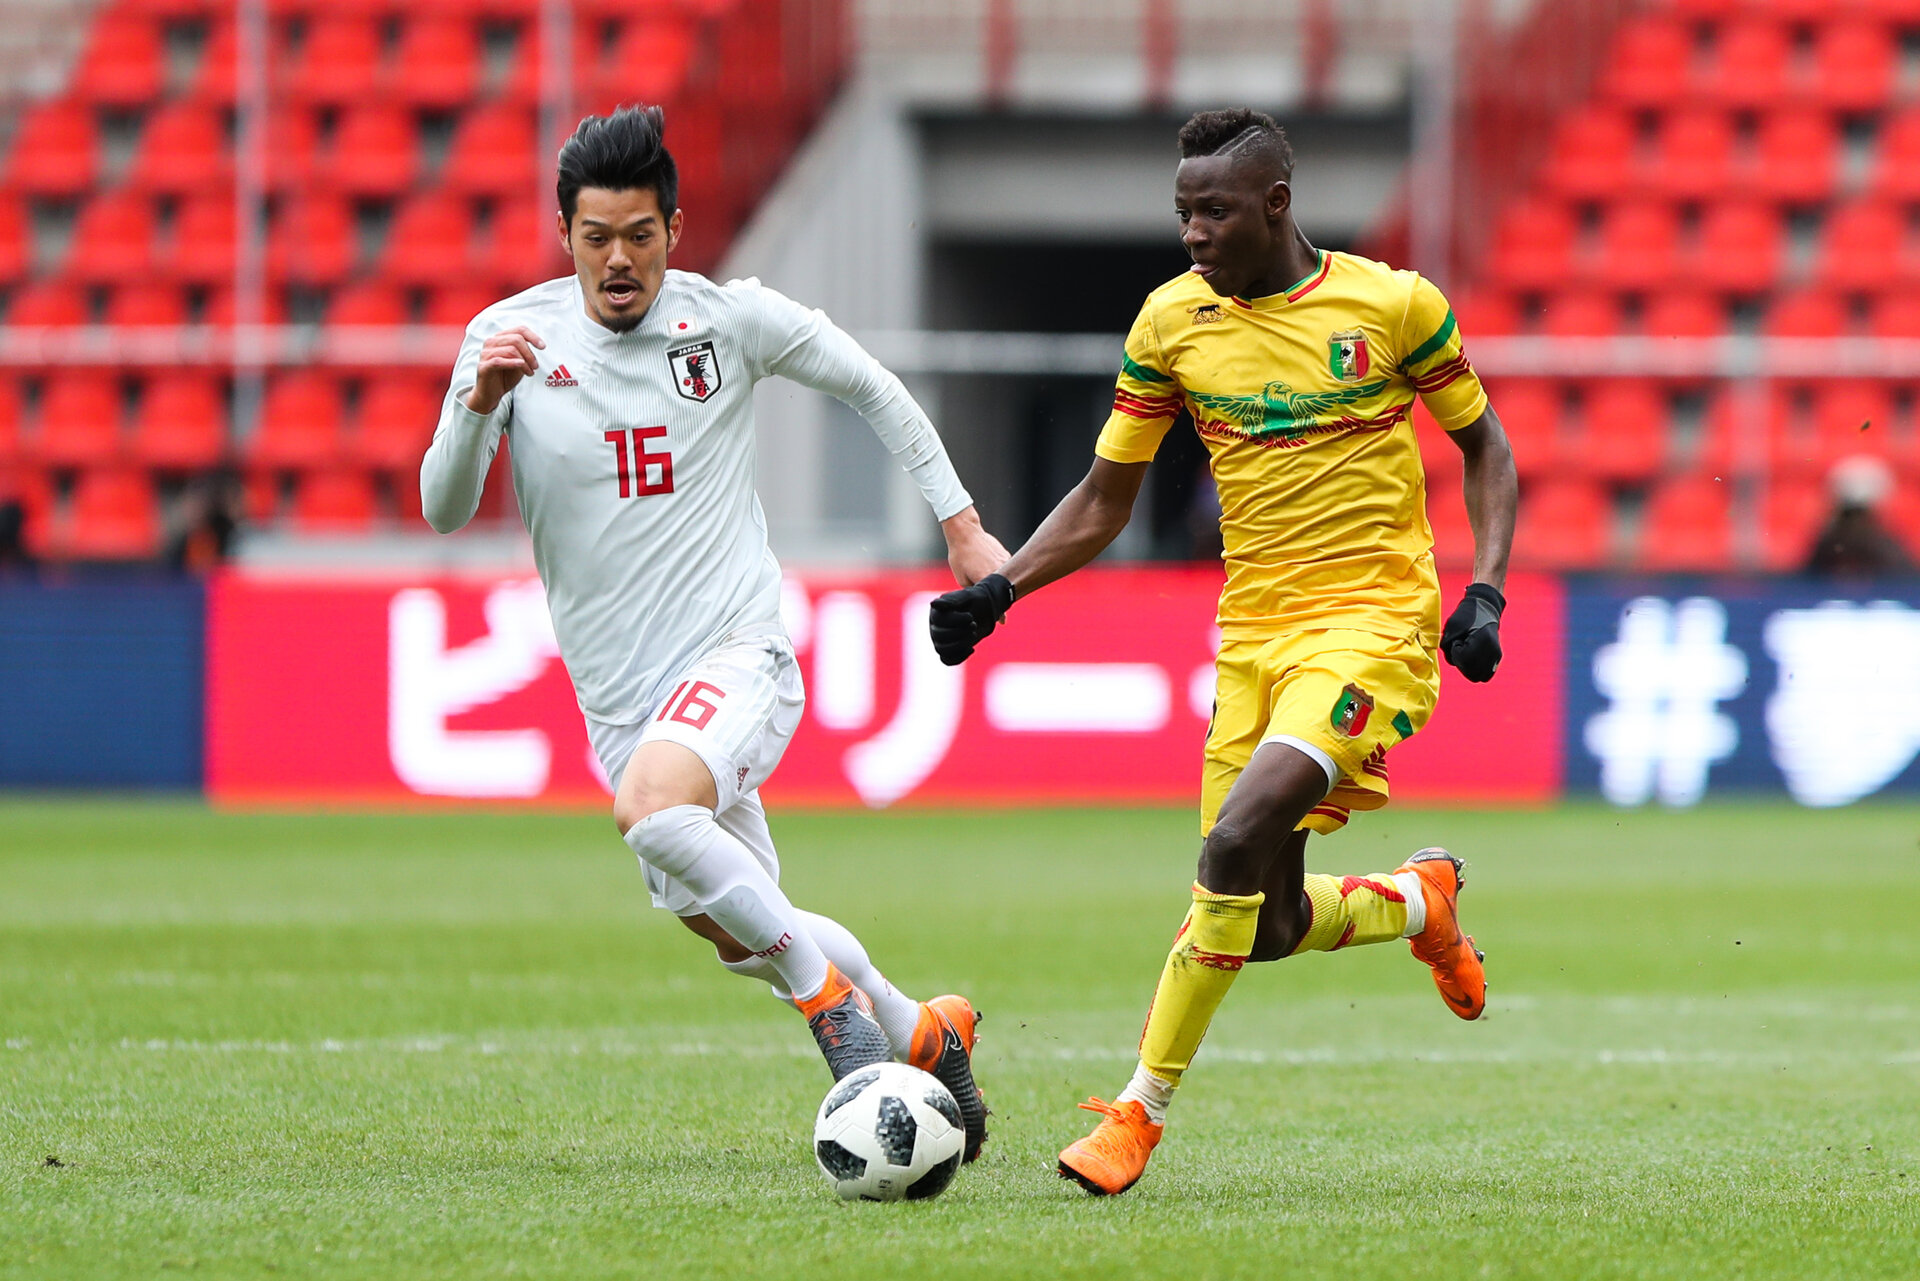 Hotaru Yamaguchi of Japan and Moussa Djenepo of Mali during the International friendly match between Japan and Mali on March 23, 2018 in Liege, Belgium. (Photo by Johnny Fidelin/Icon Sport via Getty Images)